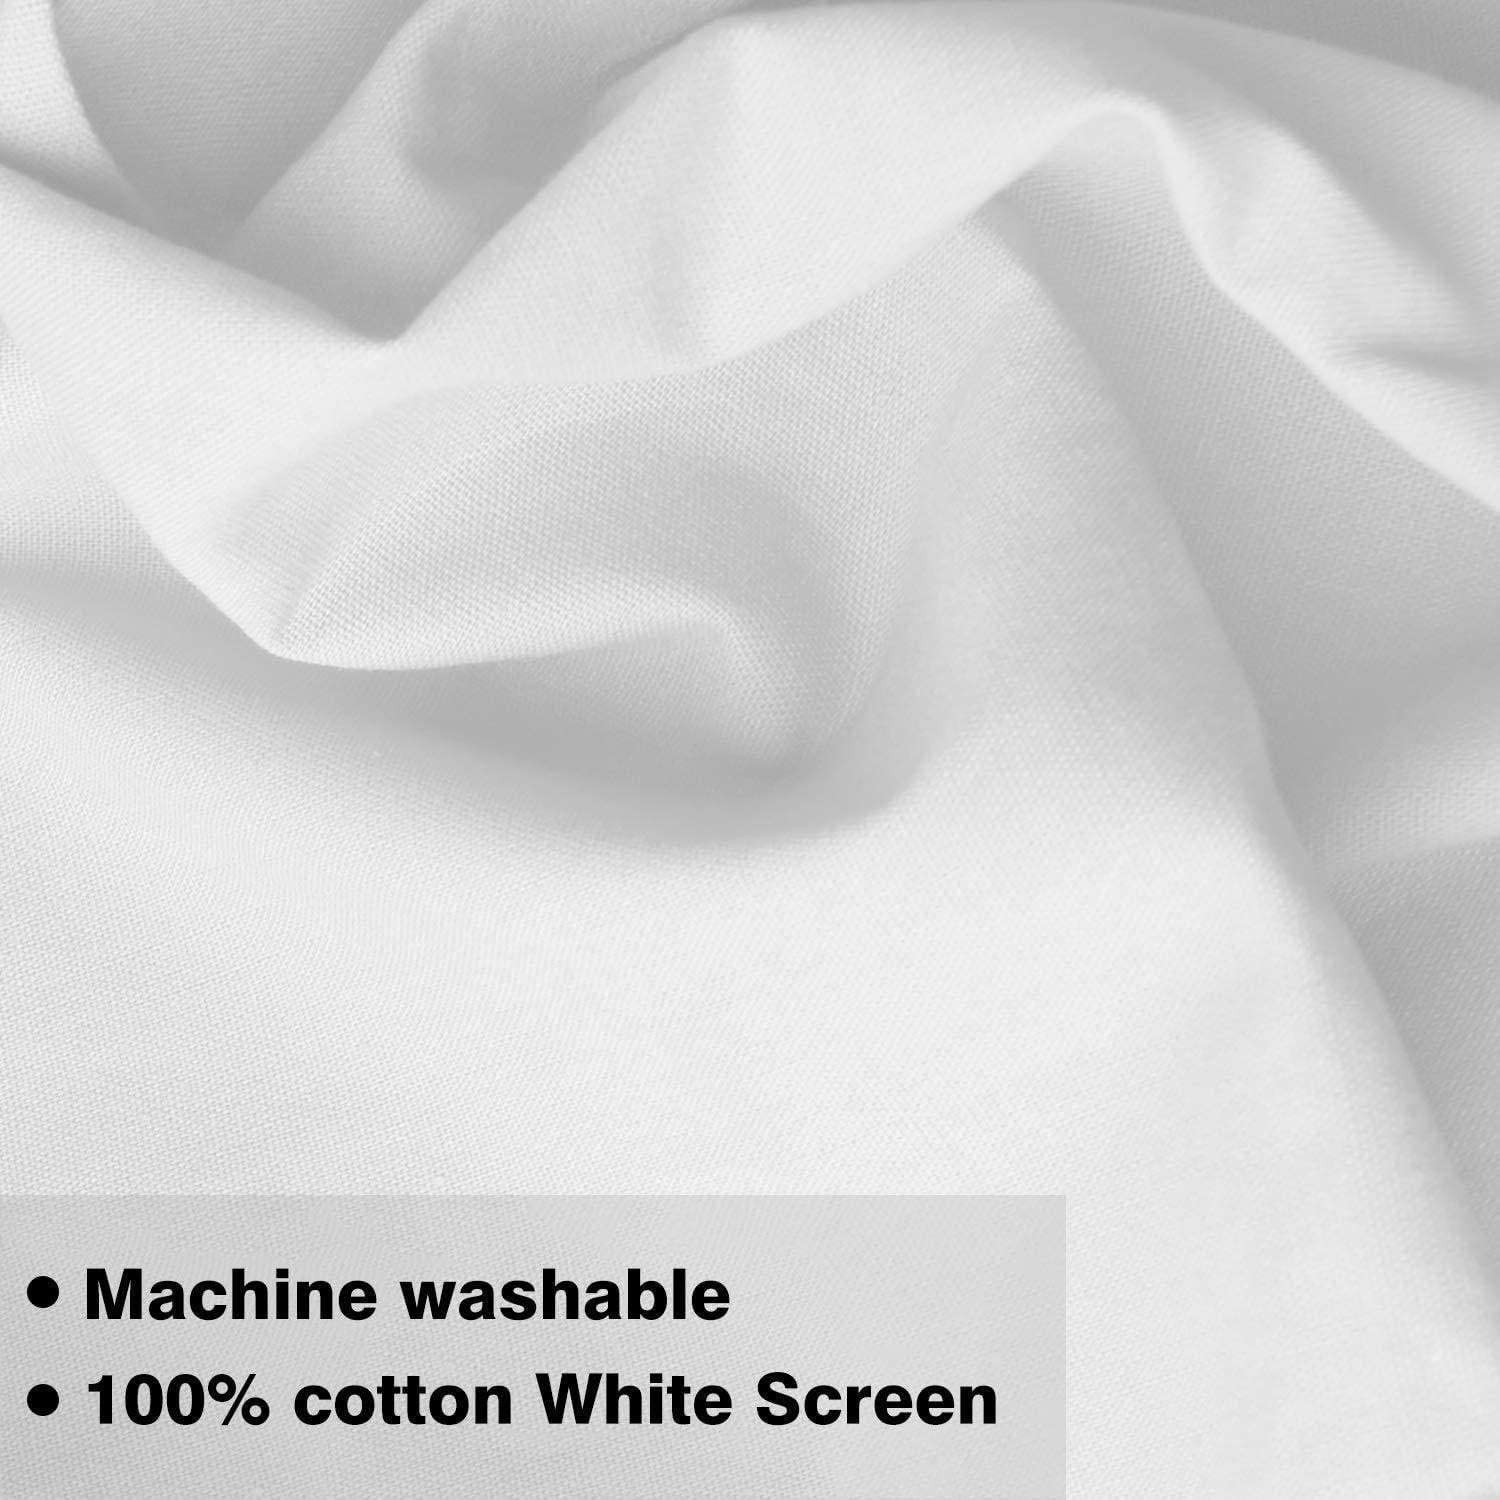 CanadianStudio 10 x 12 ft 10ft x12ft White Backdrop // 3 x 3.6 M//White Photo Video Photography Studio Fabric 100/% Pure Muslin Backdrop Background Screen